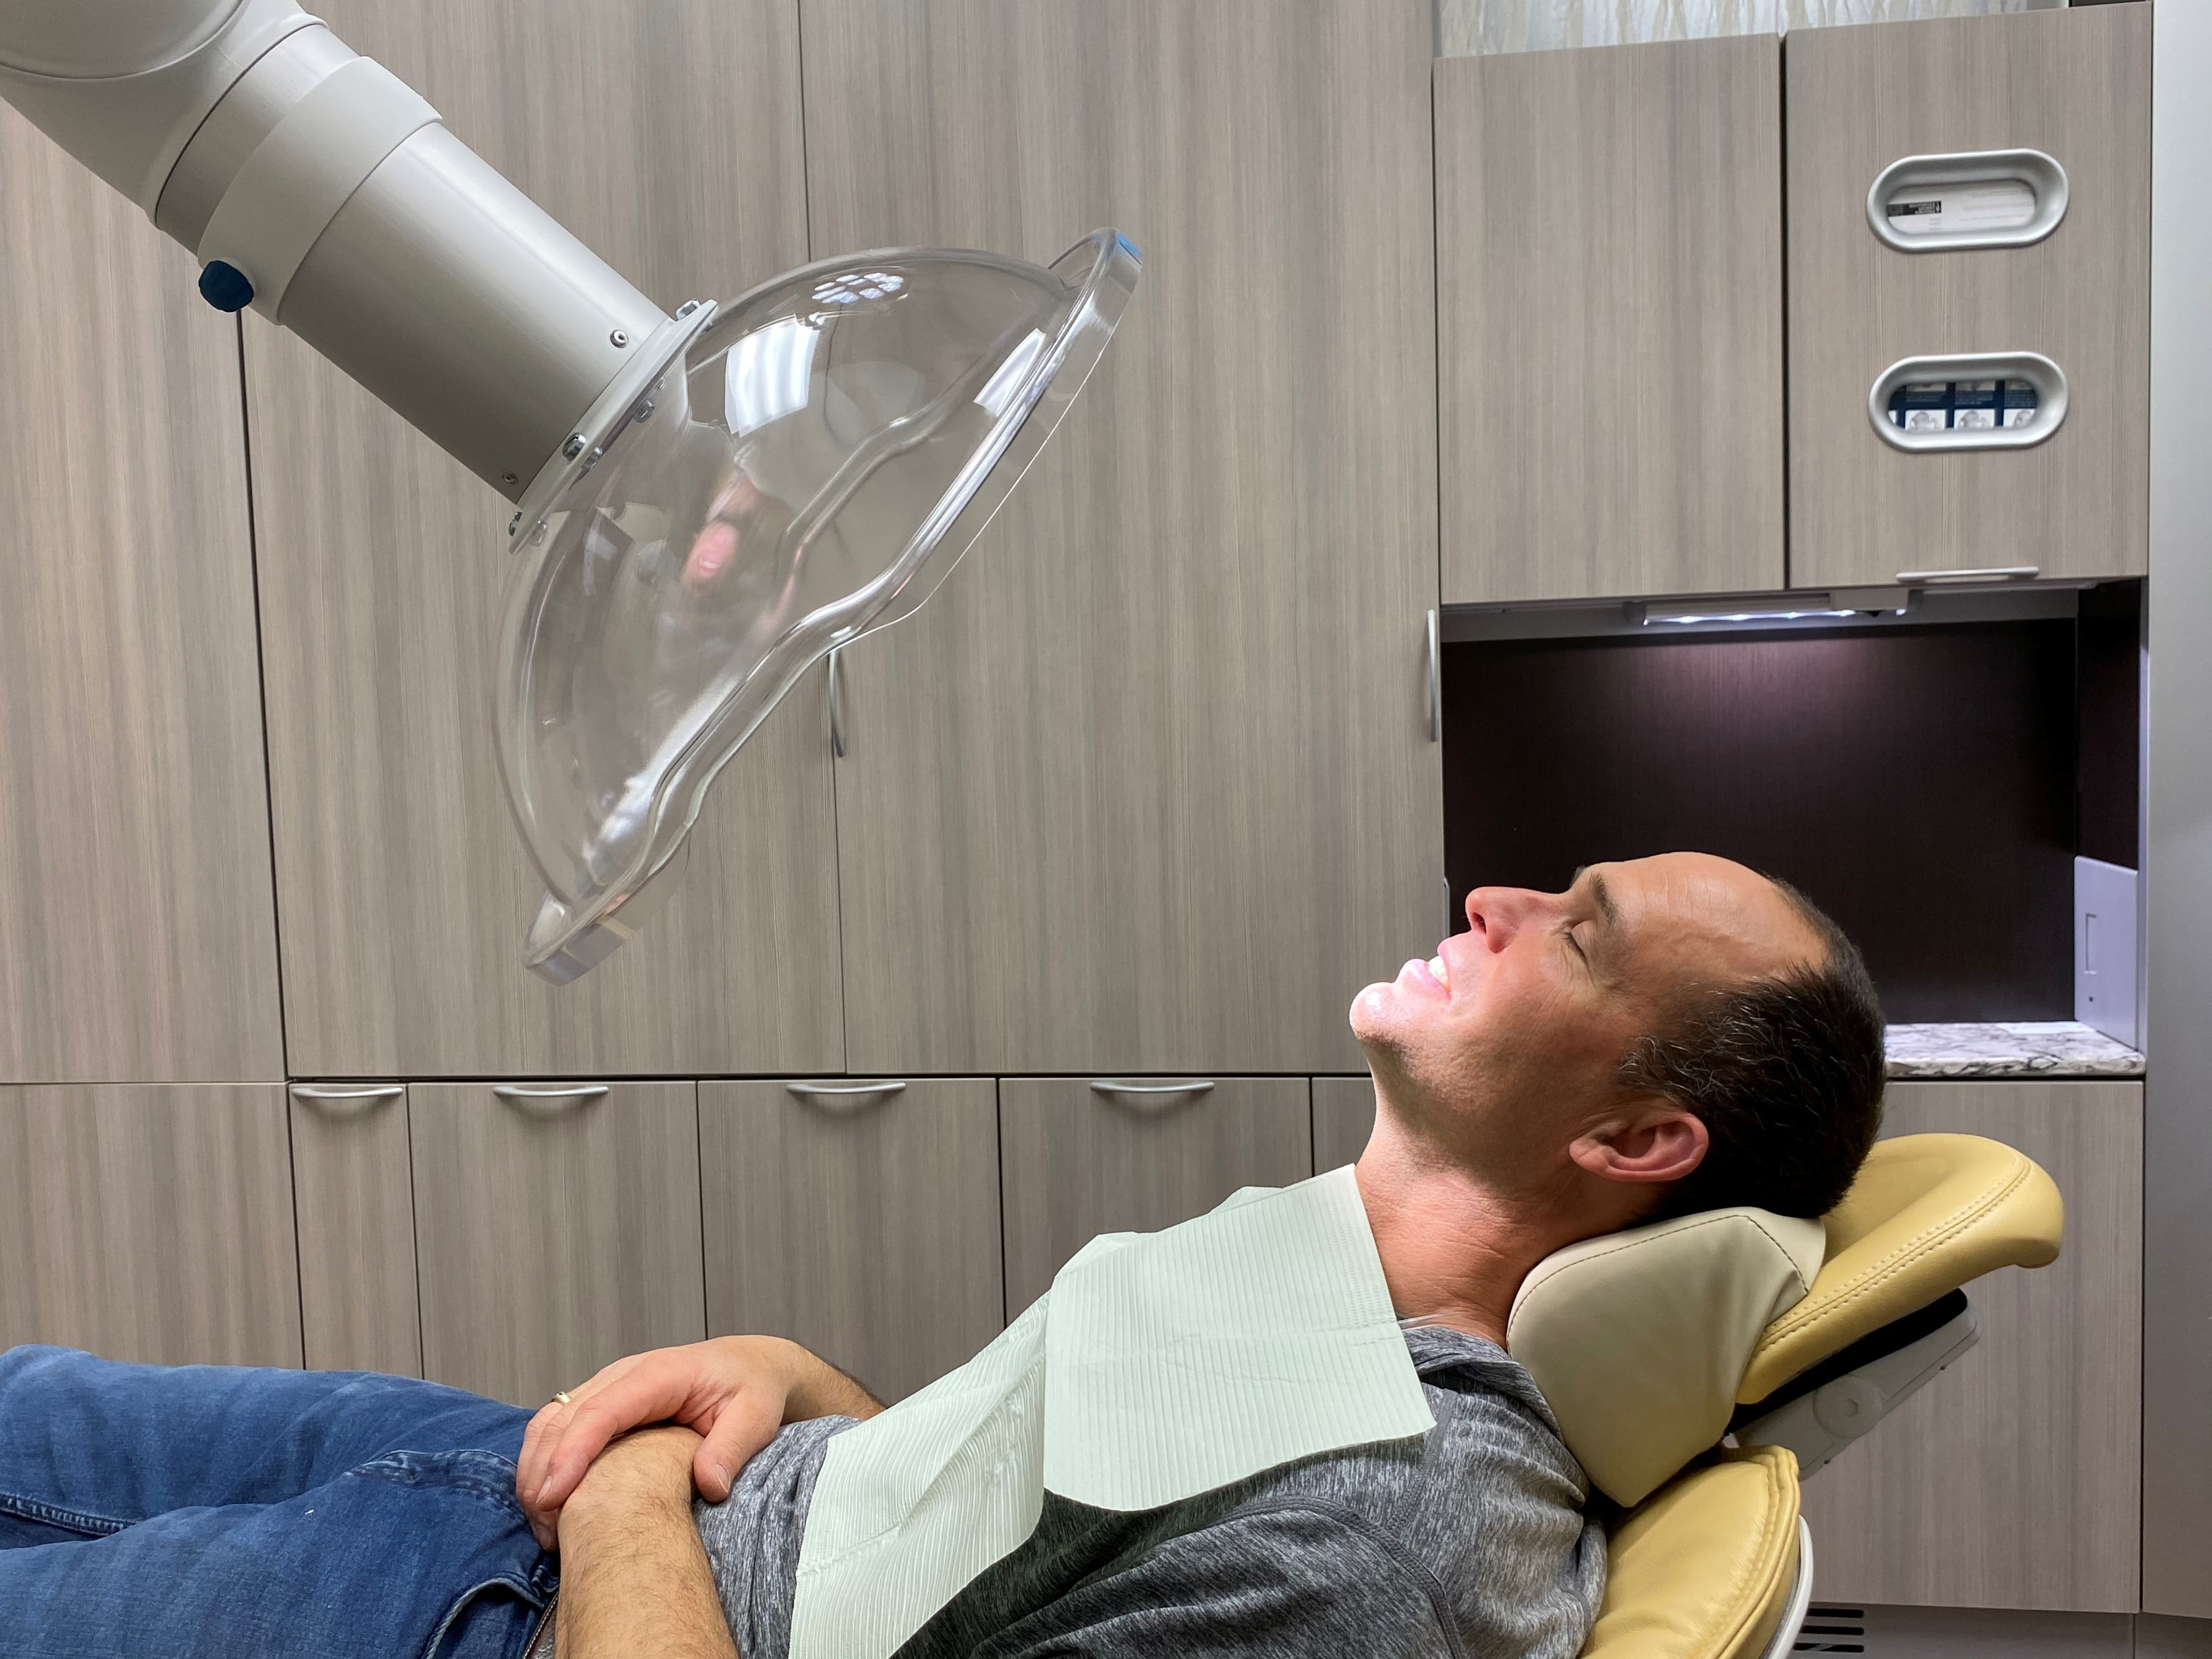 Exhaust snorkel in dentist office for covid-19